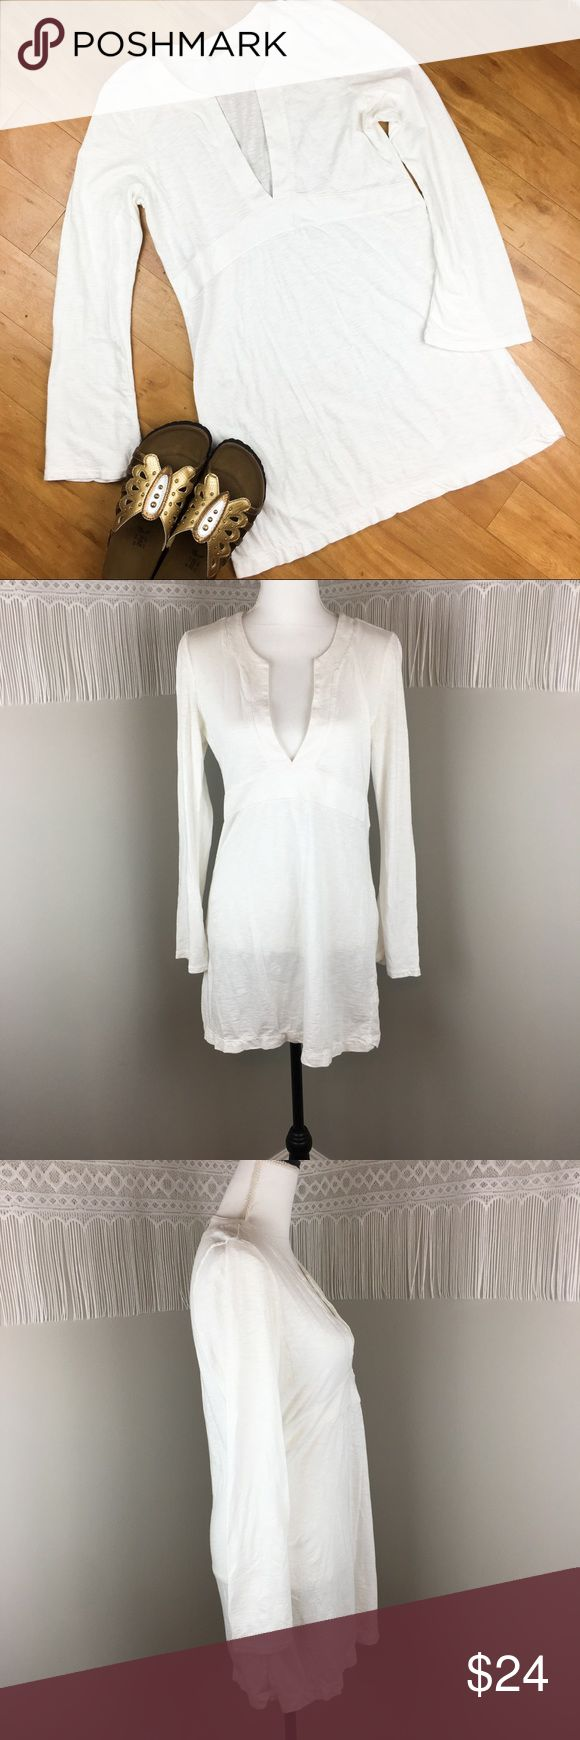 Athleta White Tunic/Dress Athleta White Tunic Top/Dress. Size medium. Approximate measurements flat laid are 31' long, 18' bust, and 23' sleeves. GUC with wear. Perfect with leggings! ❌No trades ❌ Modeling ❌No PayPal or off Posh transactions ❤️ I 💕Bundles ❤️Reasonable Offers PLEASE ❤️ Athleta Tops Tunics